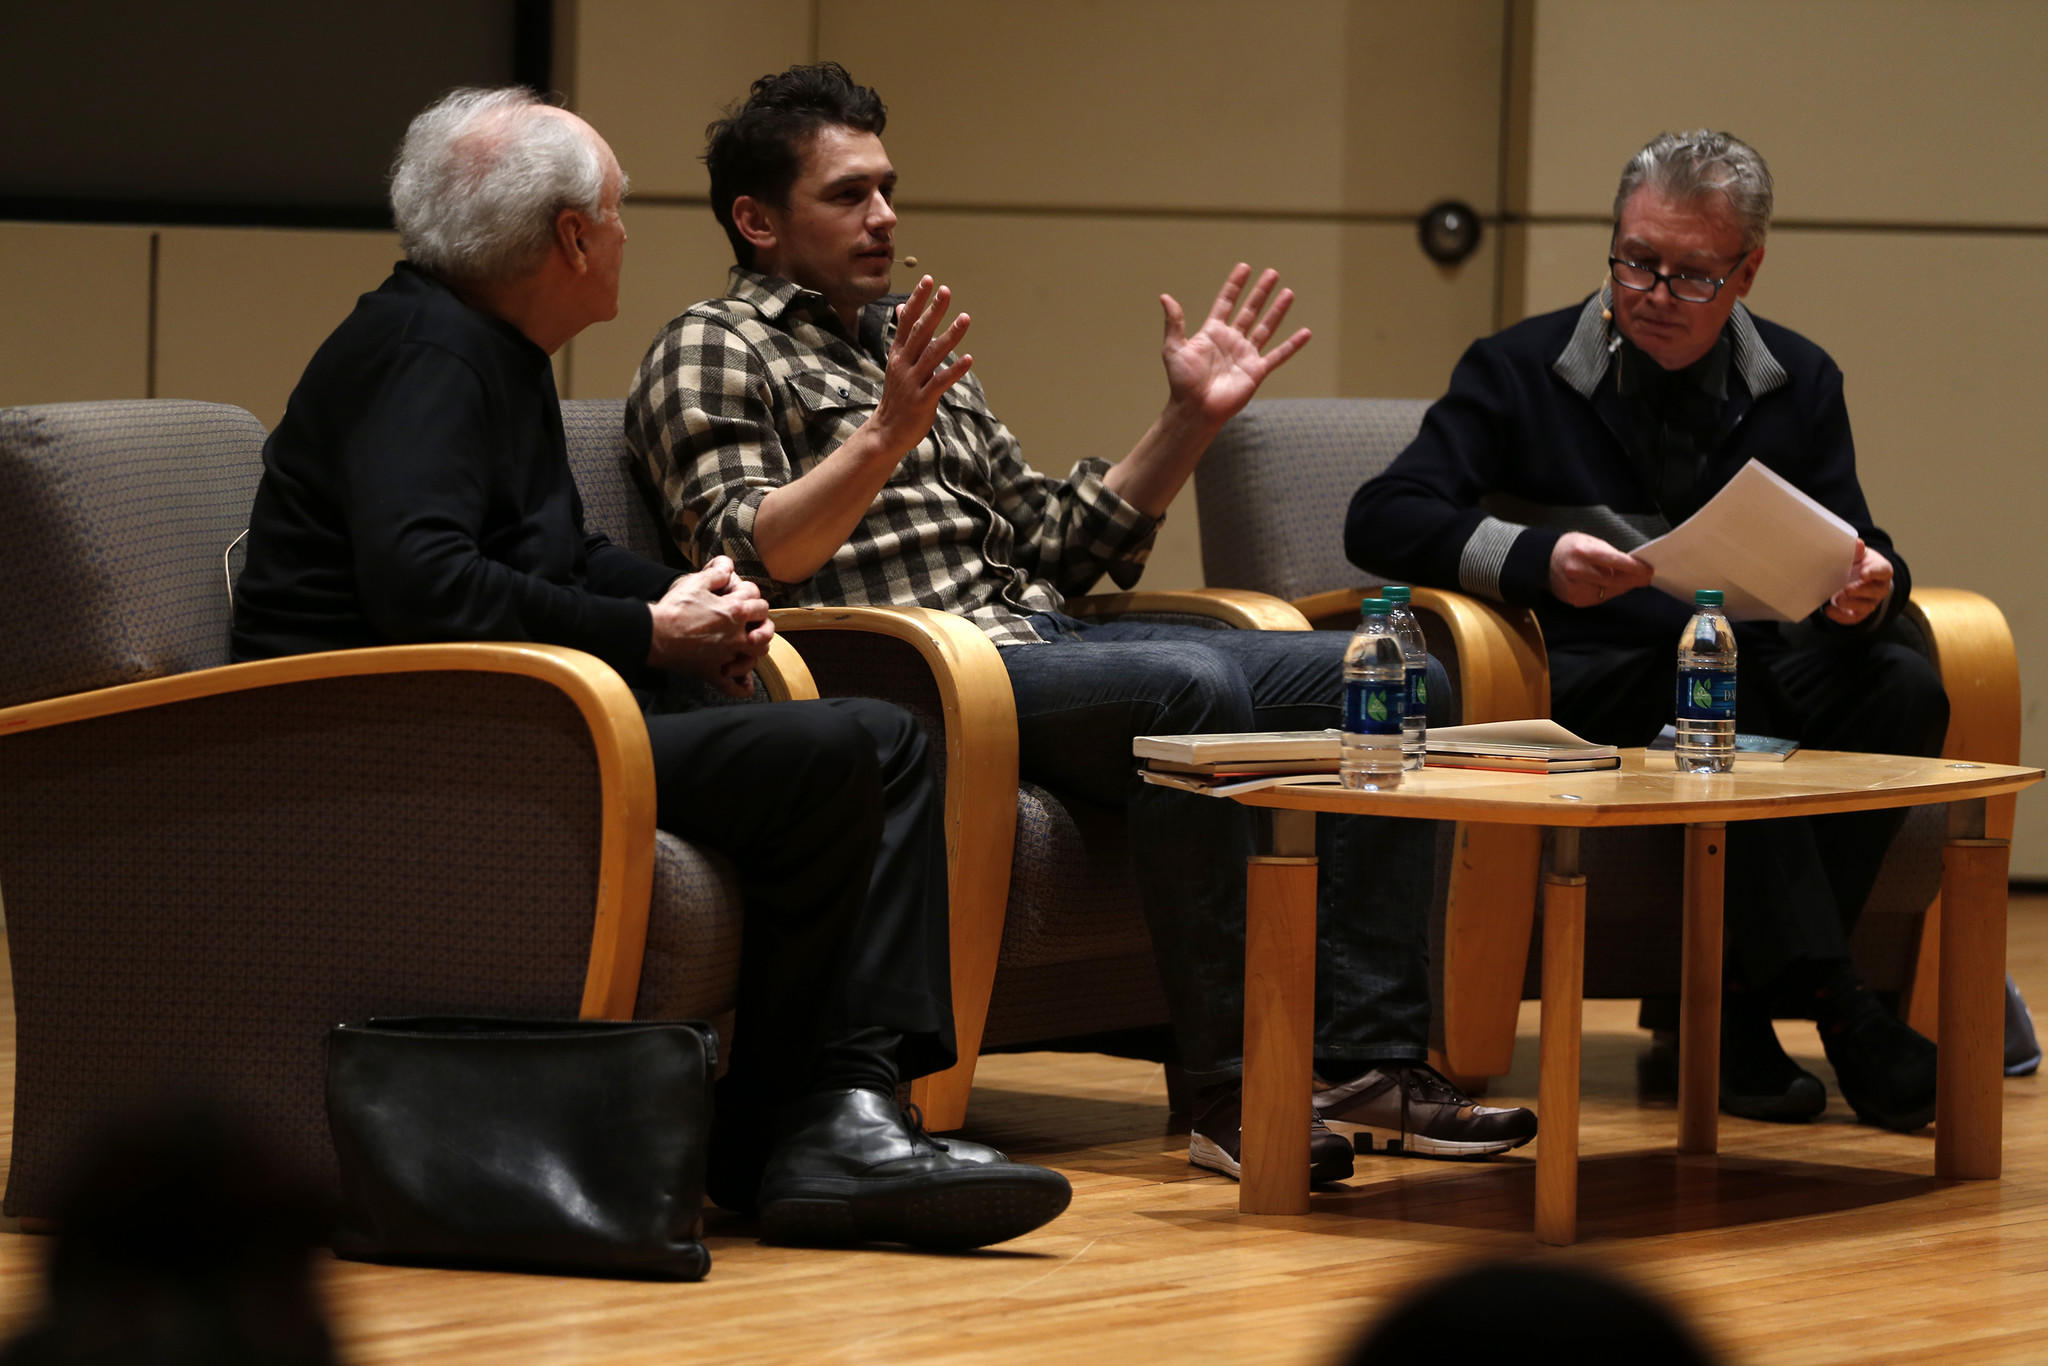 James Franco and poet Frank Bidart (left) are interviewed by Robert Polito during Chicago Humanities Festival poetry event at Thorne Auditorium in Chicago.